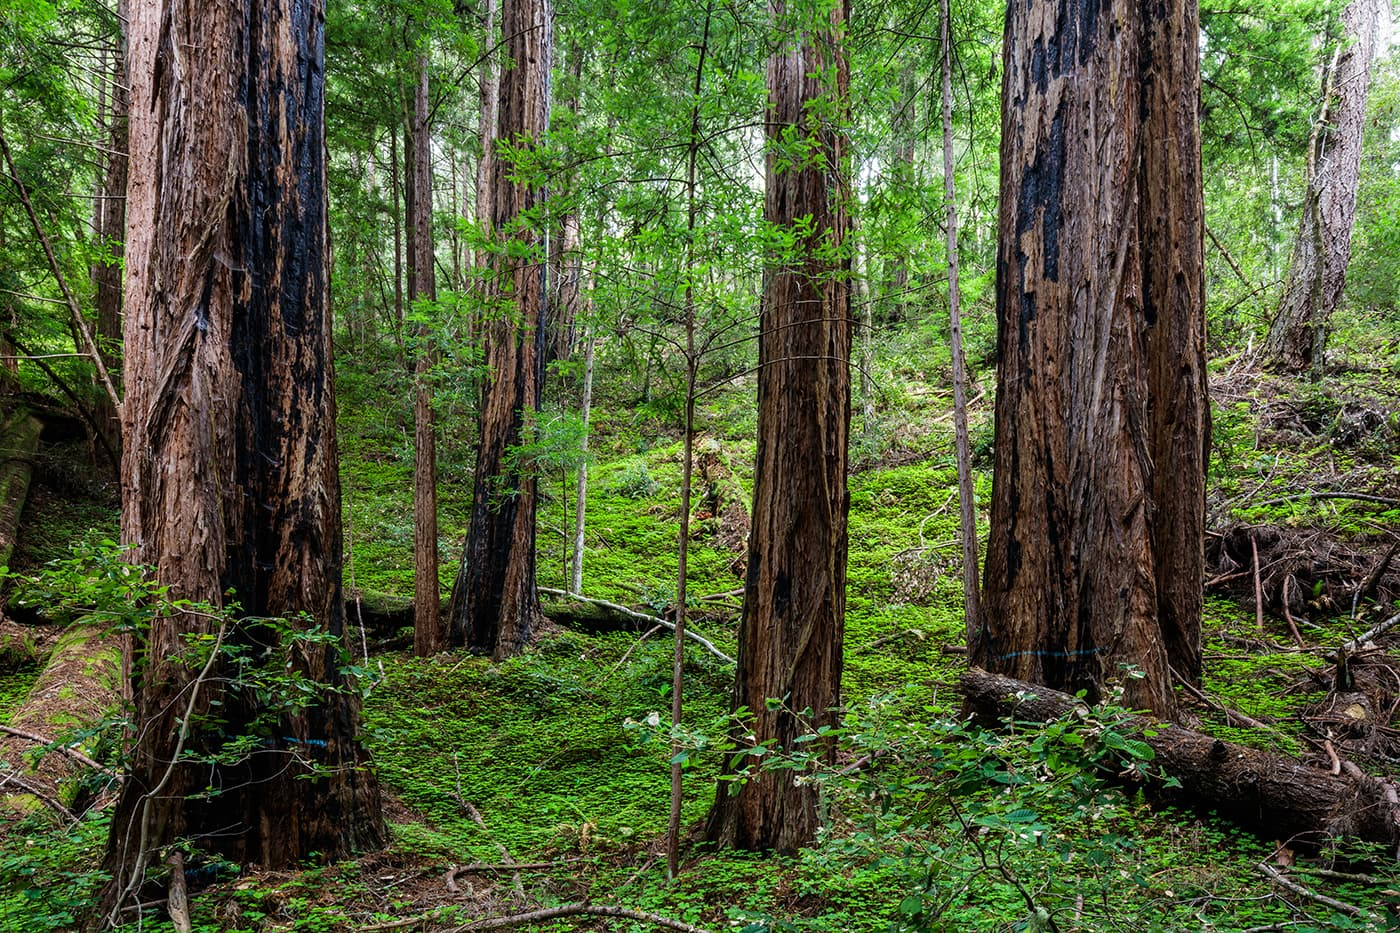 Redwoods nestled in a bed of sorrels on Cascade Creek, in the ancestral territory of the Quiroste tribe.